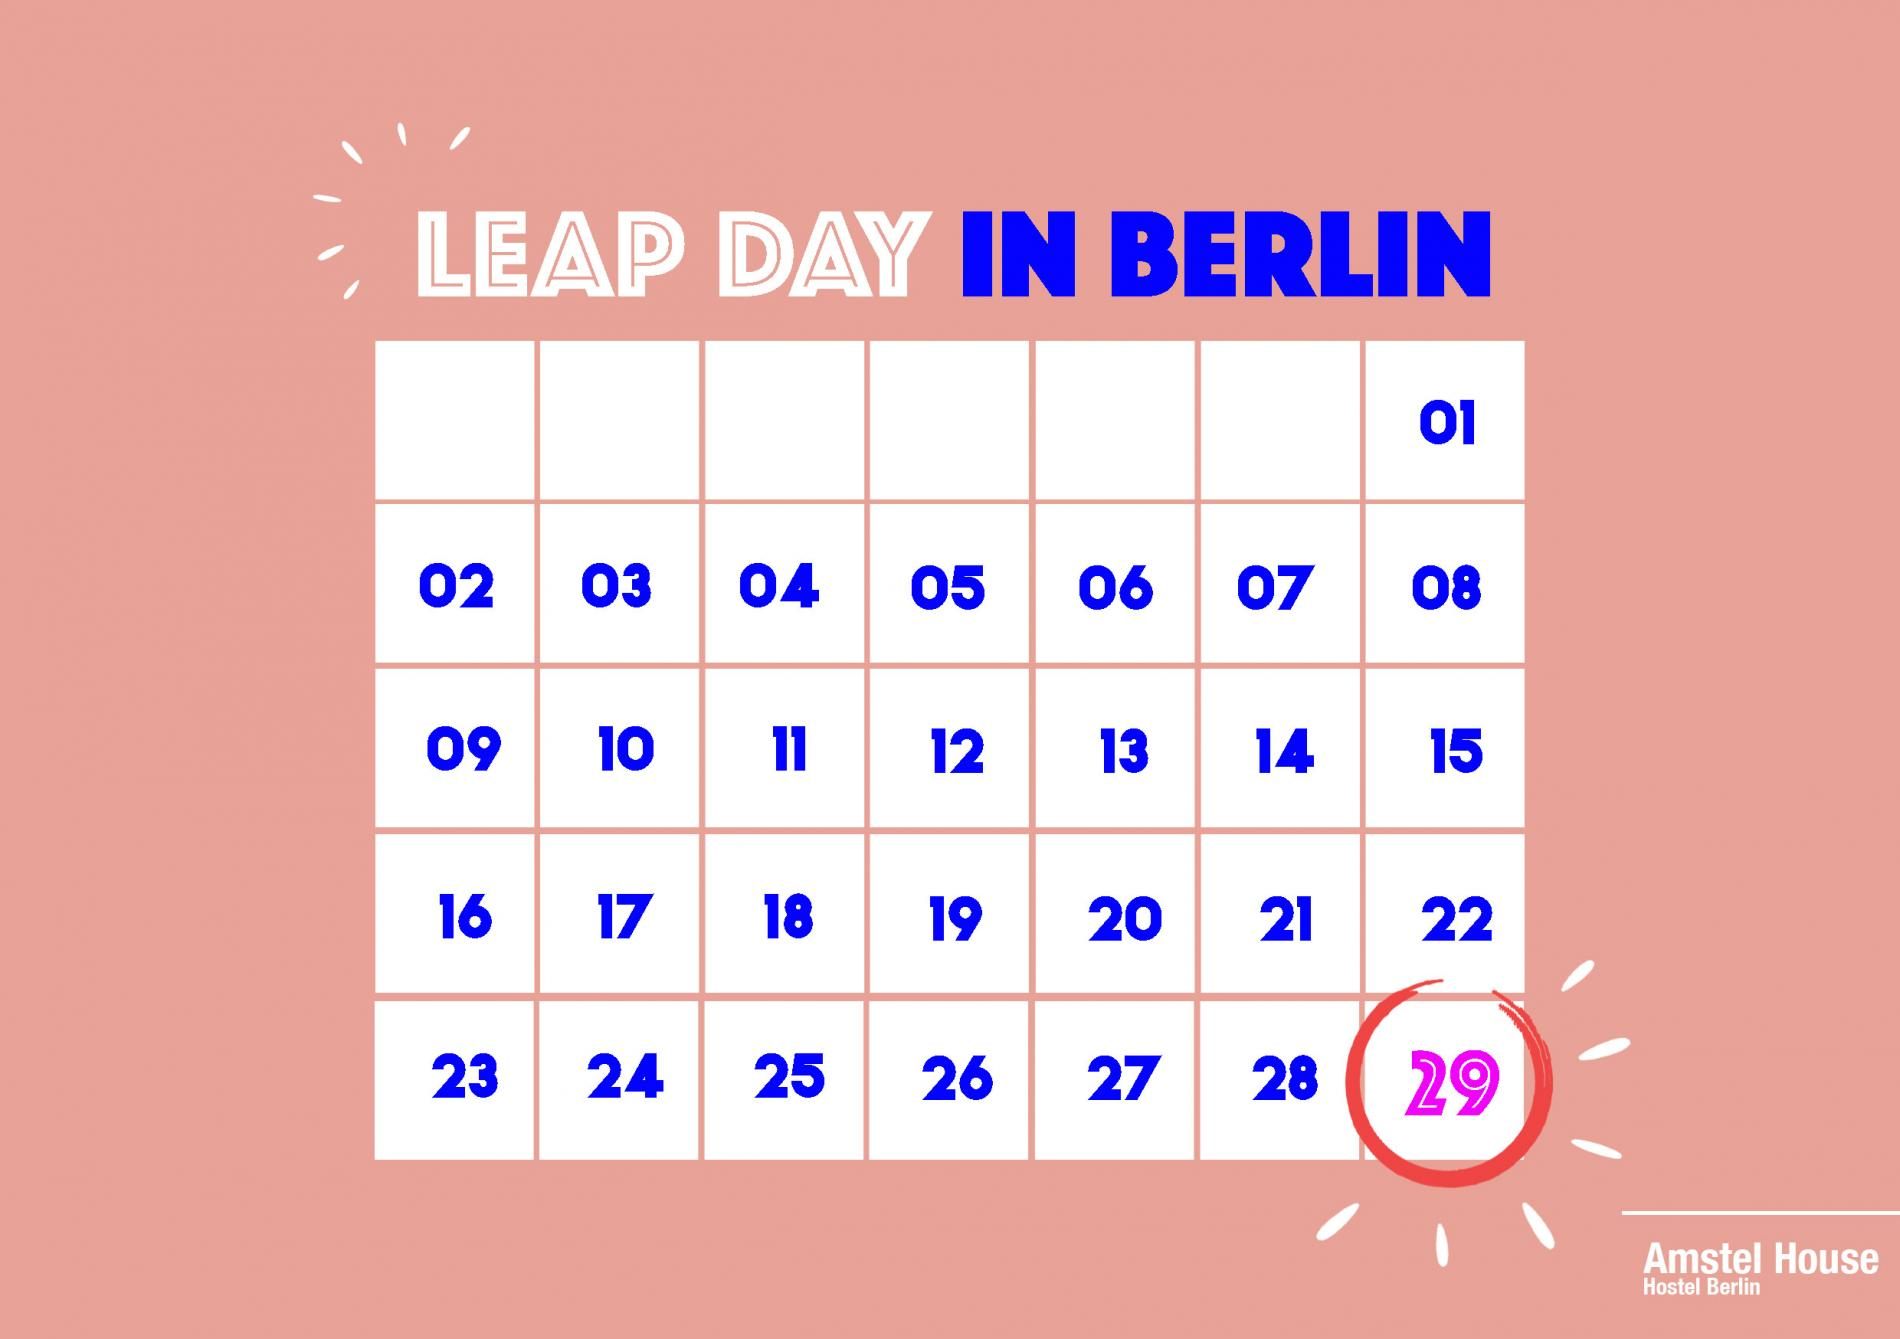 Celebrate Leap Day in Berlin